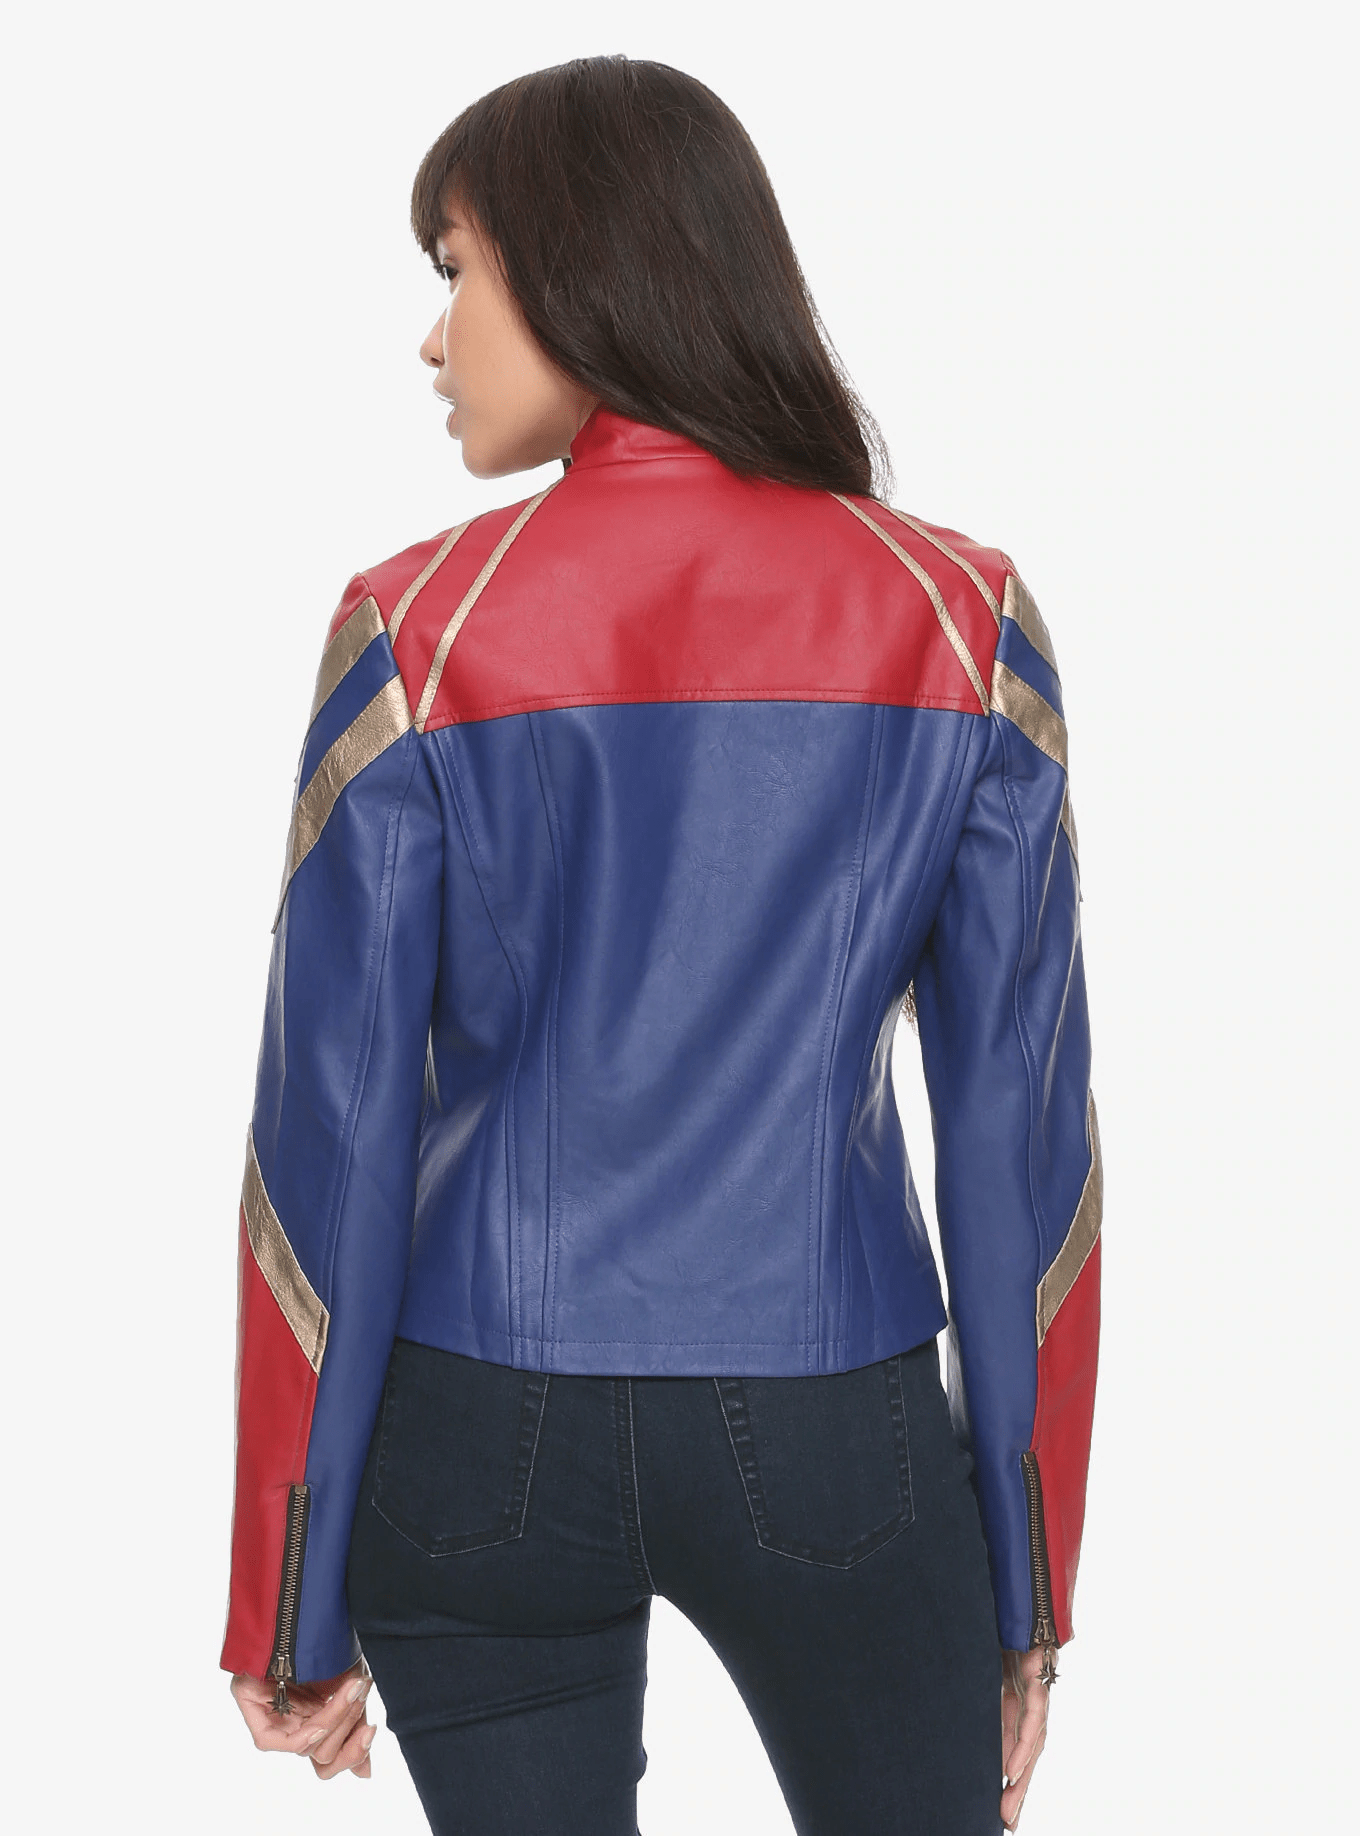 brie larson captain marvel jacket leather costume outfit